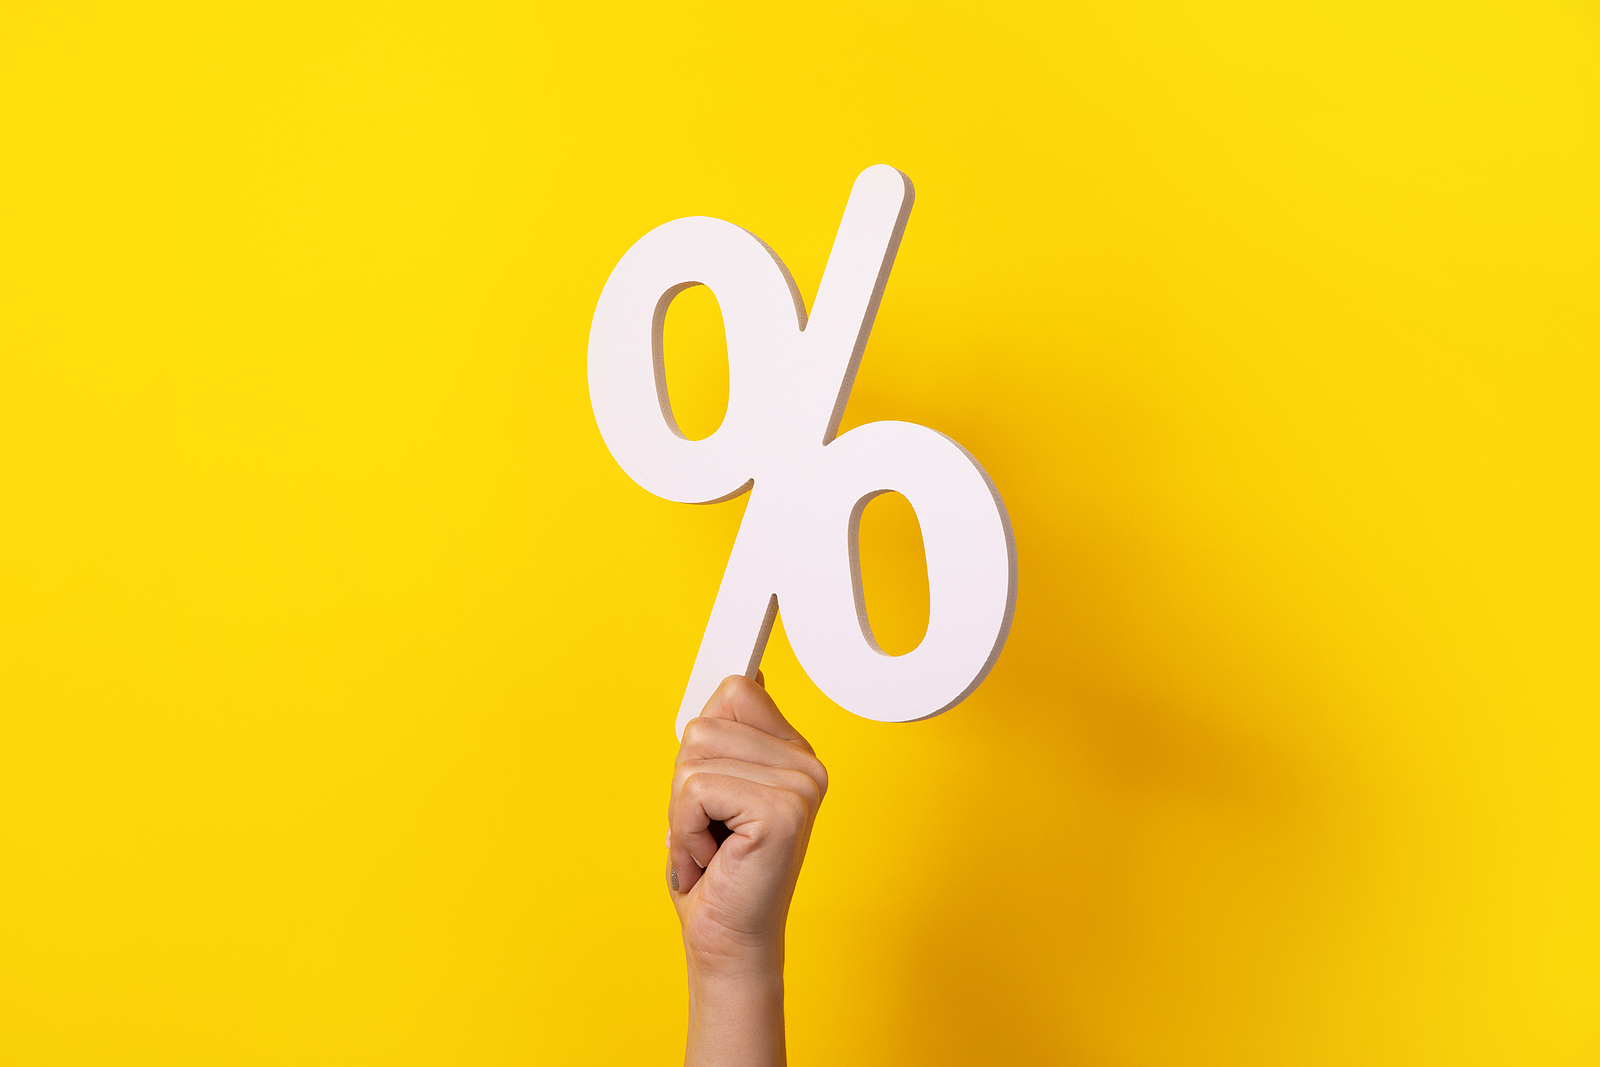 hand holding percentage sign over yellow background